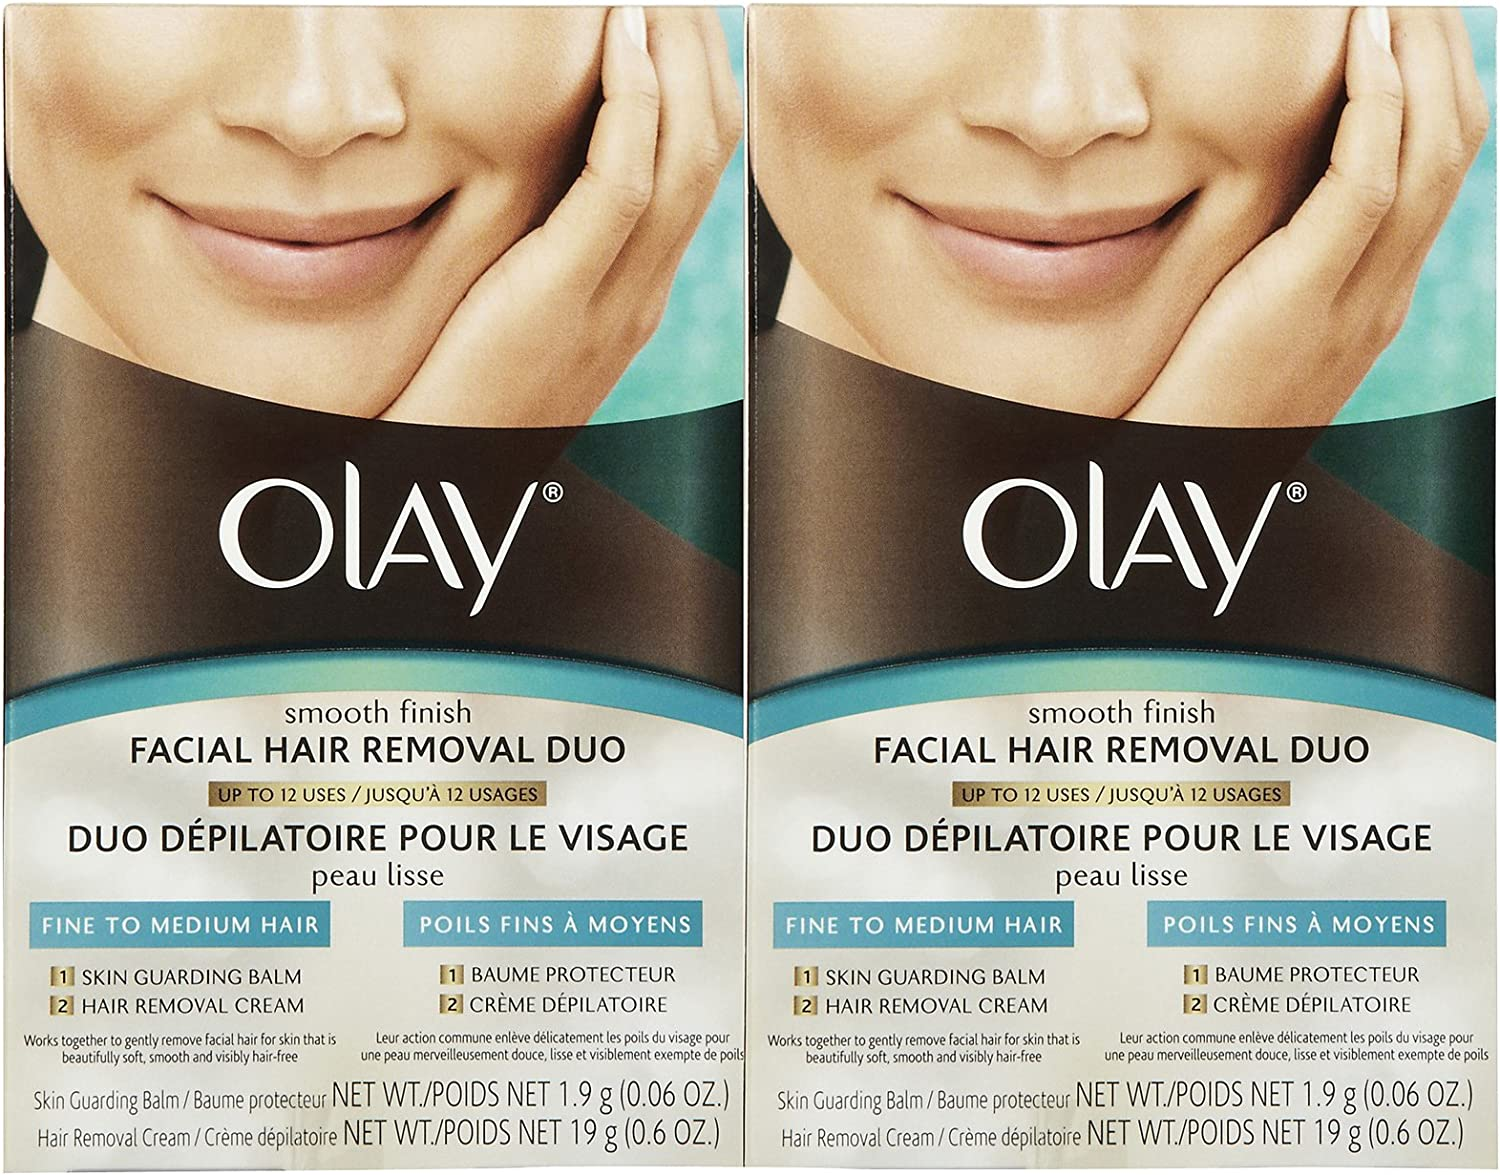 Olay Facial Hair Removal Duo - 2 pk